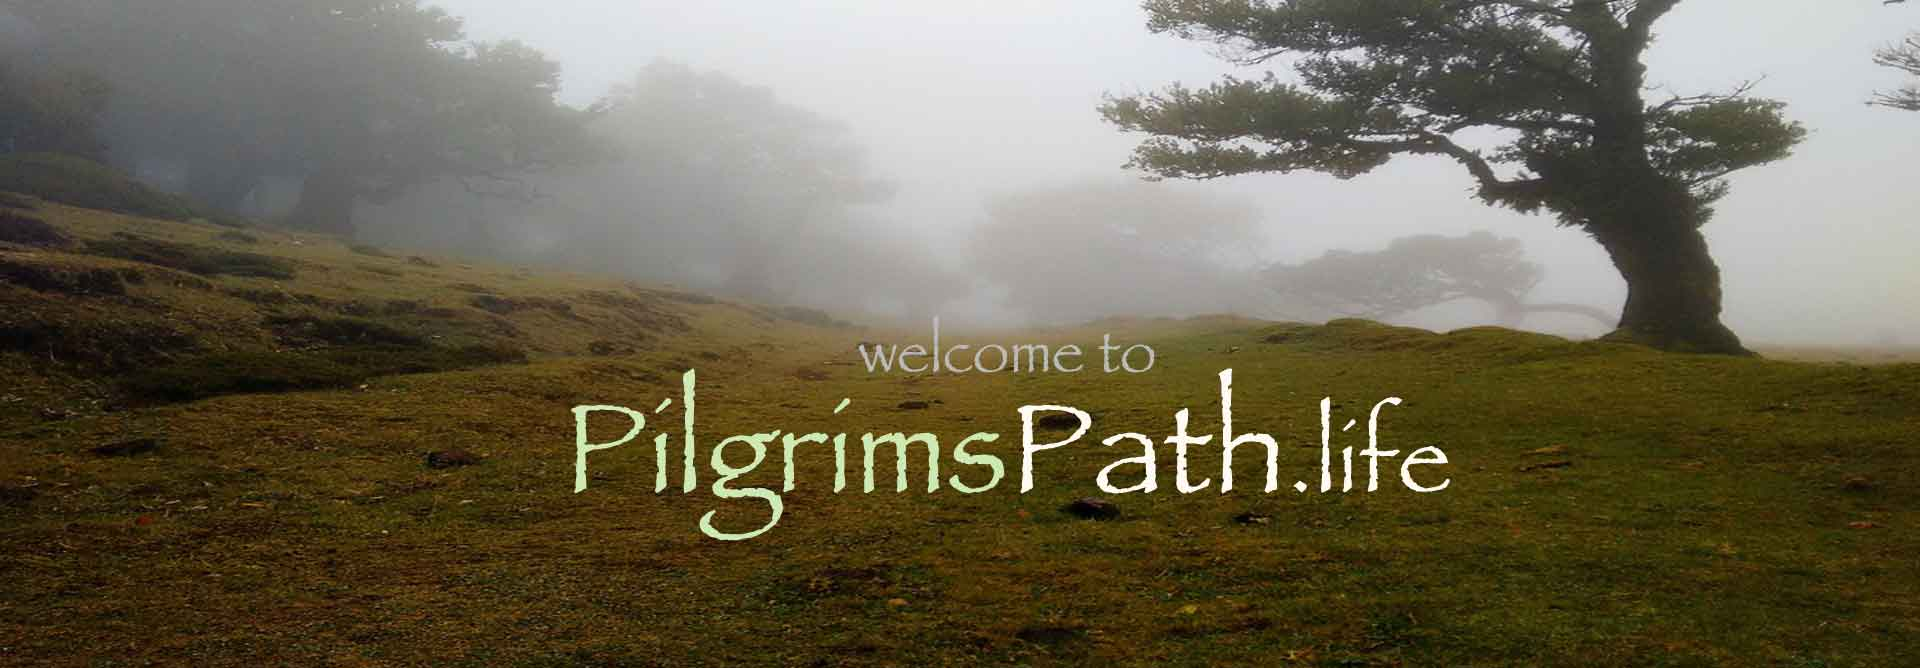 Welcome to Pilgrims Path